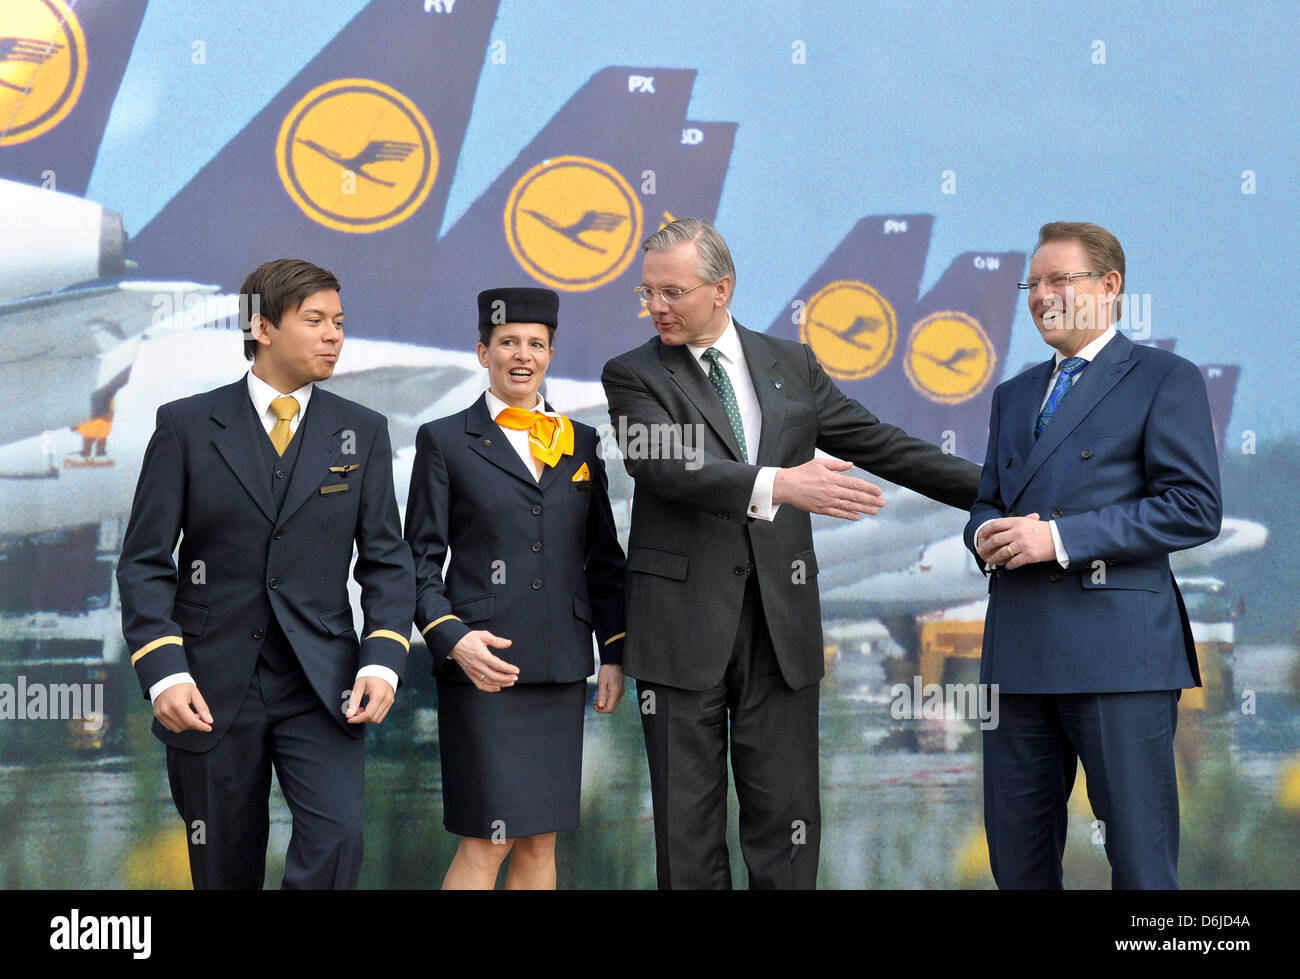 Lufthansa AG CEO, Christoph Franz (2-R), and managing board member Stephan Gemkow (R) stand in front of a photo - Stock Image